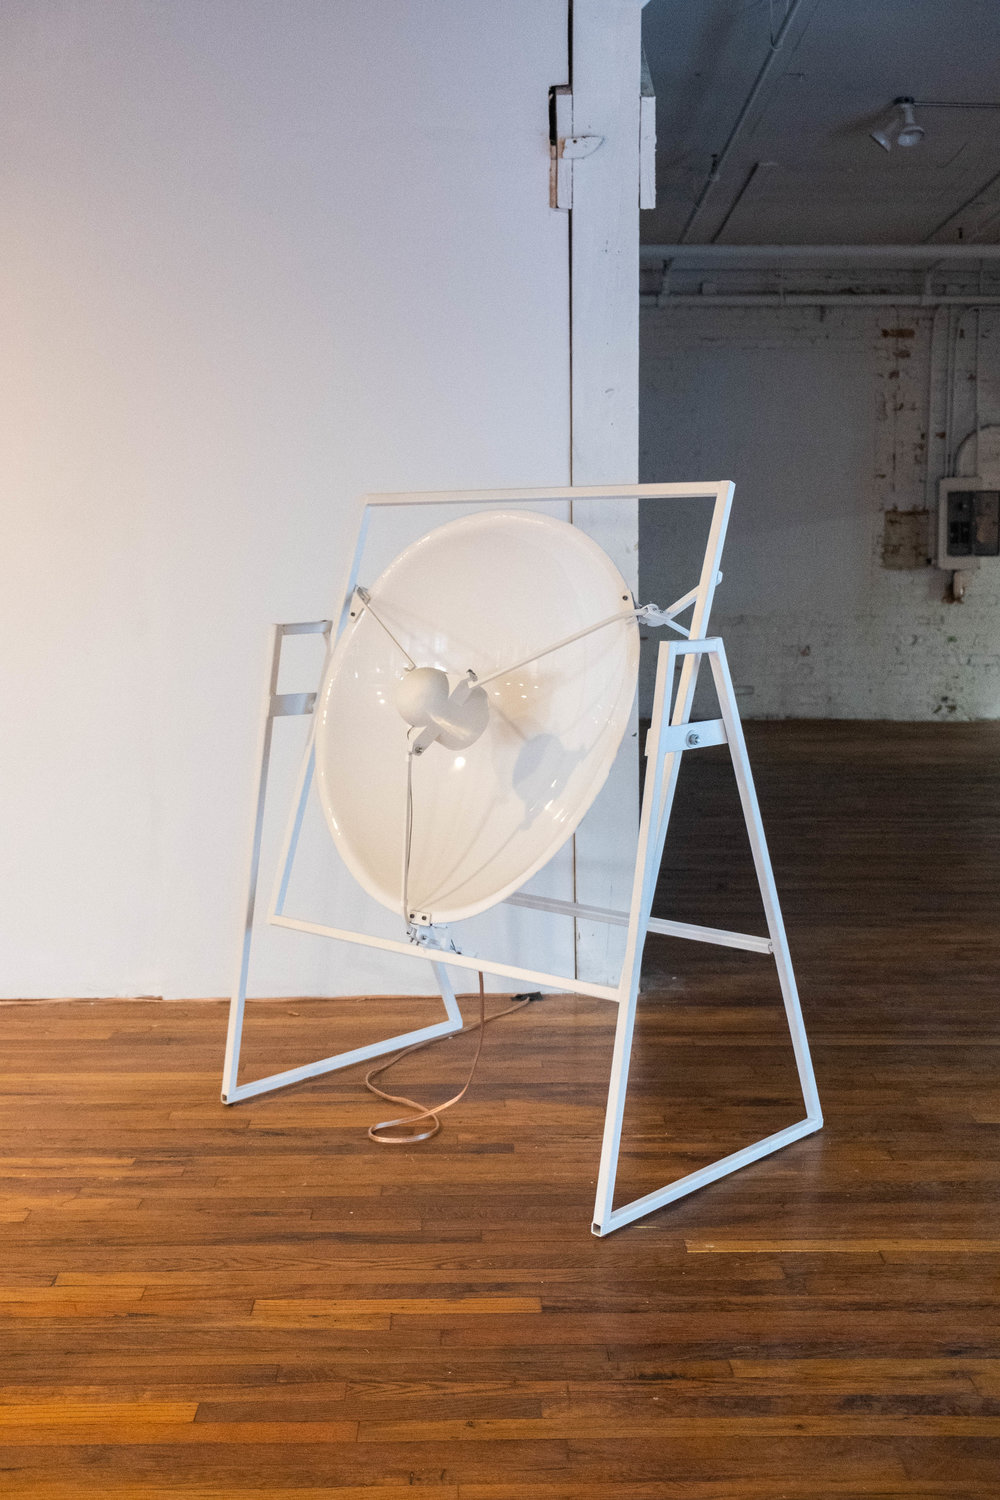 Installation detail of  guncotton  (2018), mixed media sound installation. Image by Sarah-Anne Wagoner. Courtesy of Stove Works.